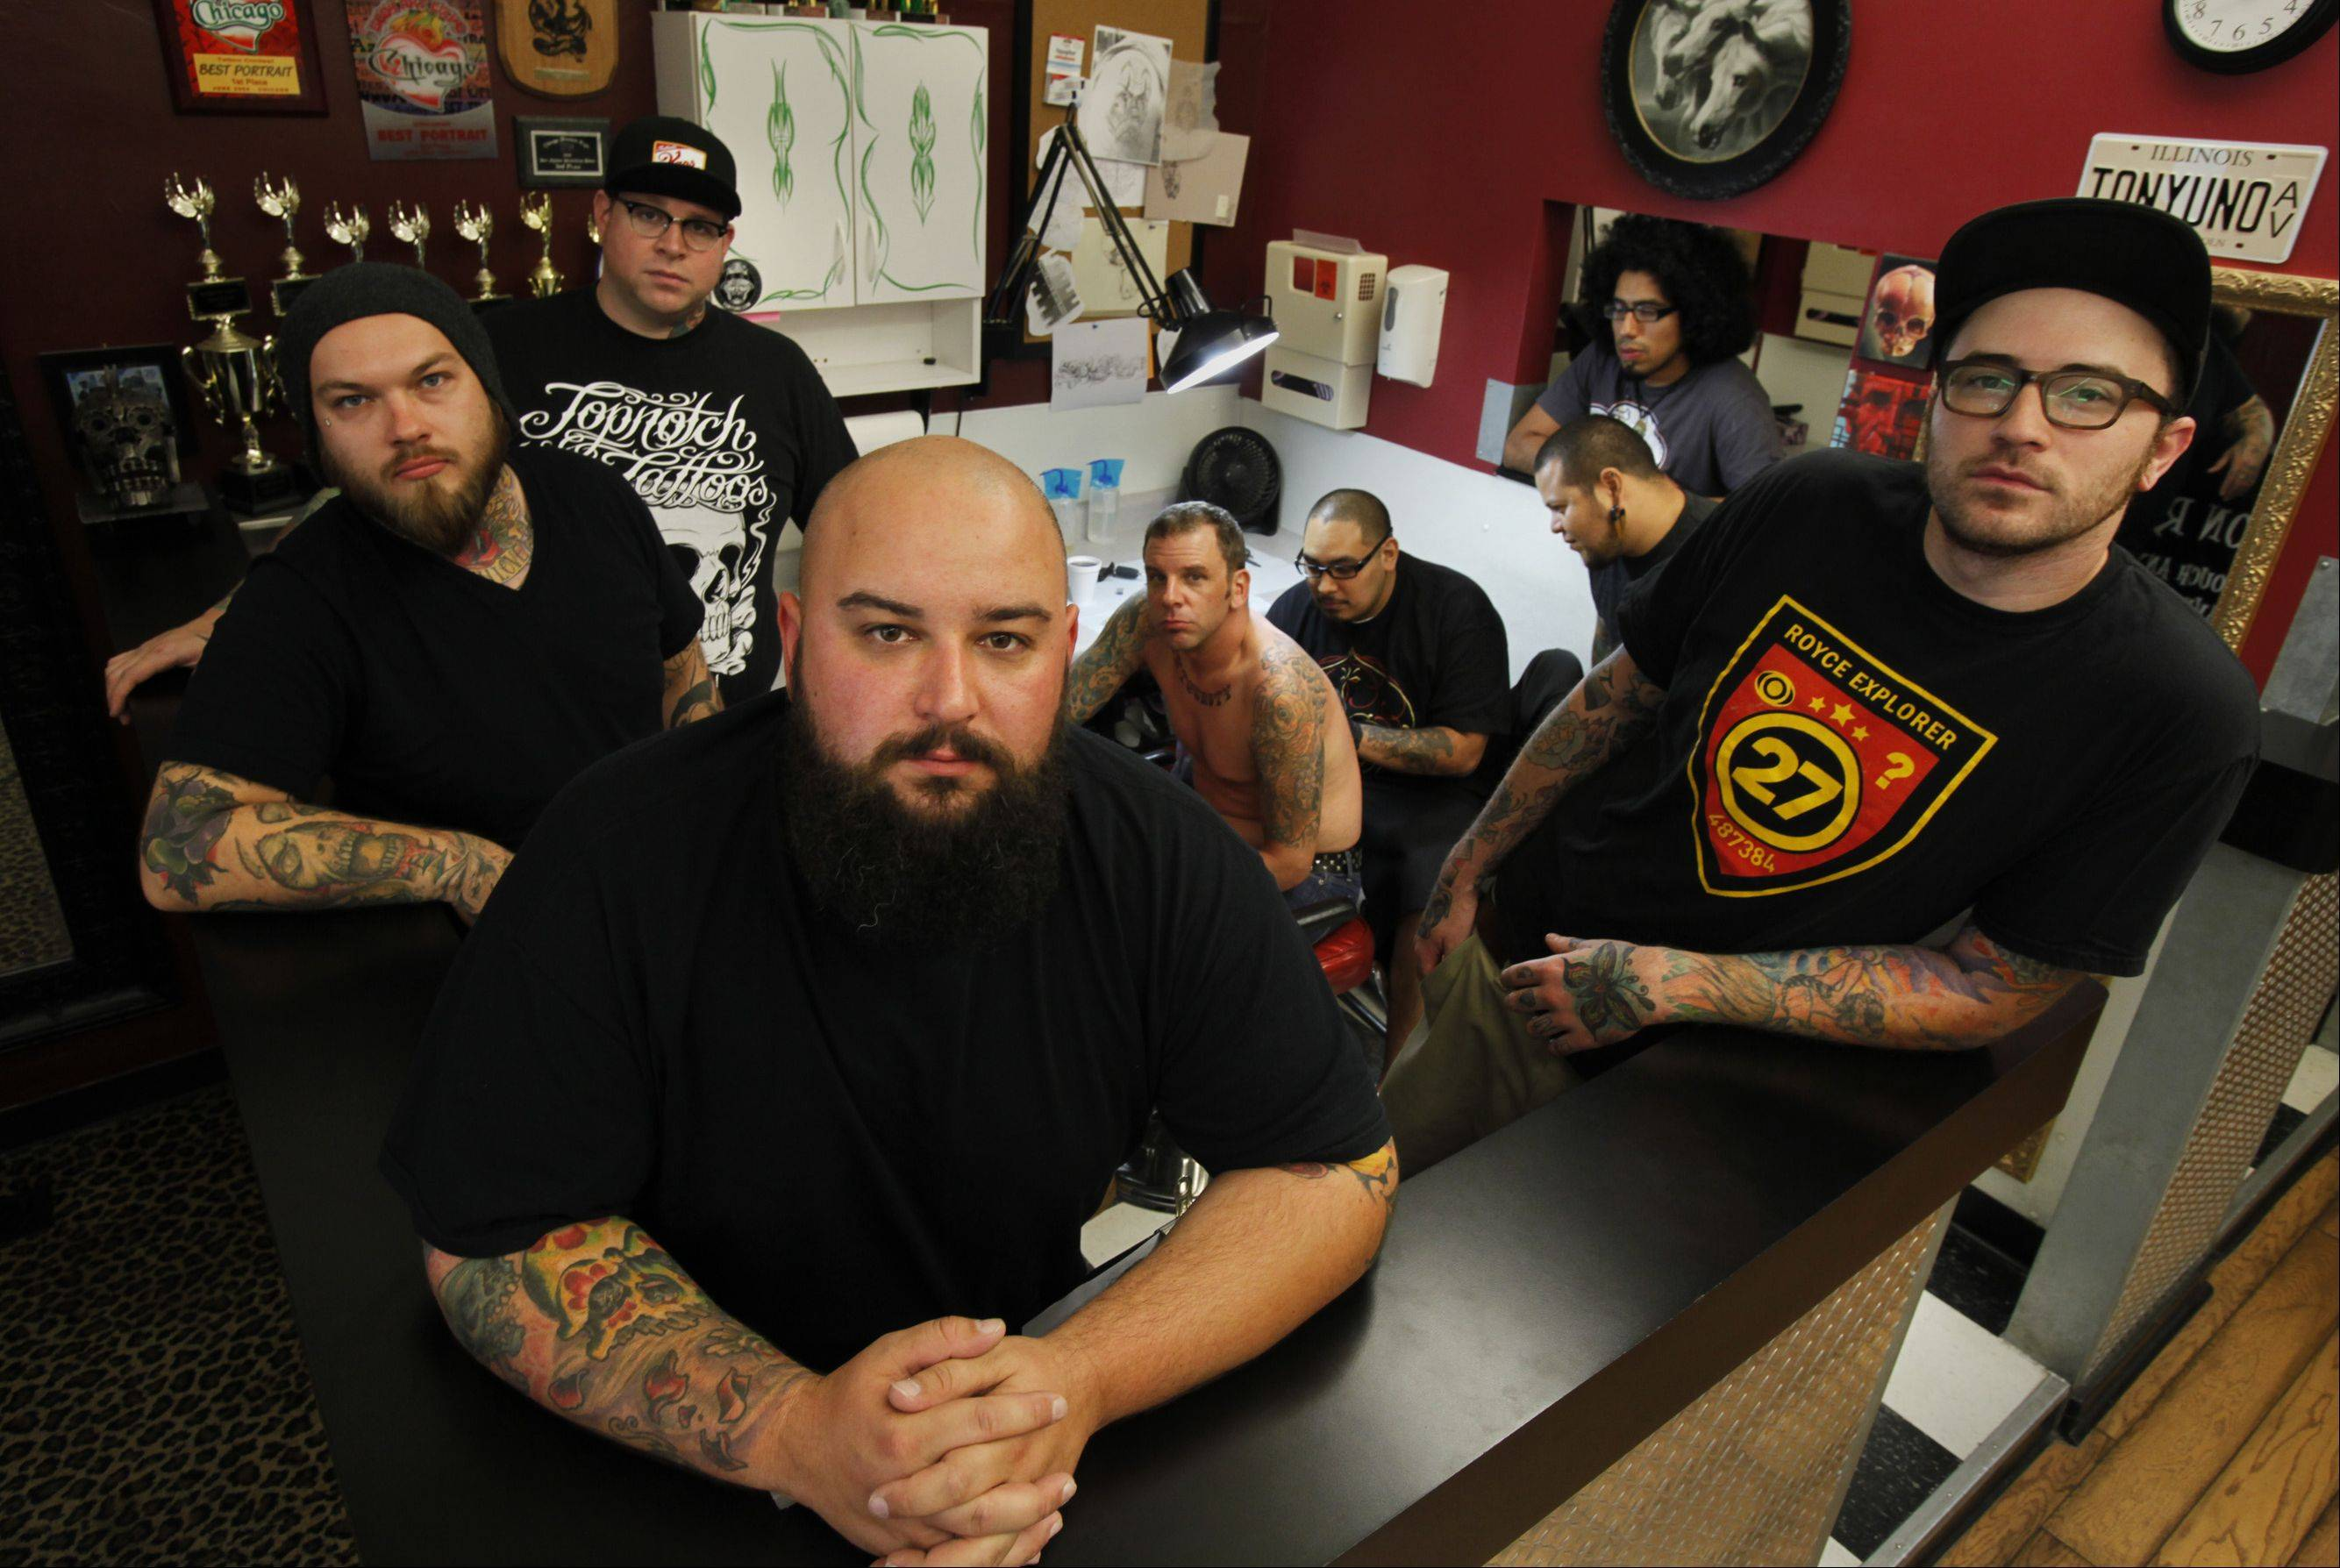 Luke Clifford, front, and his 216 E. Crew at Topnotch Tattoos in Elgin, which opened in 1999. Two other tattoo shops are hoping to open nearby in downtown Elgin.